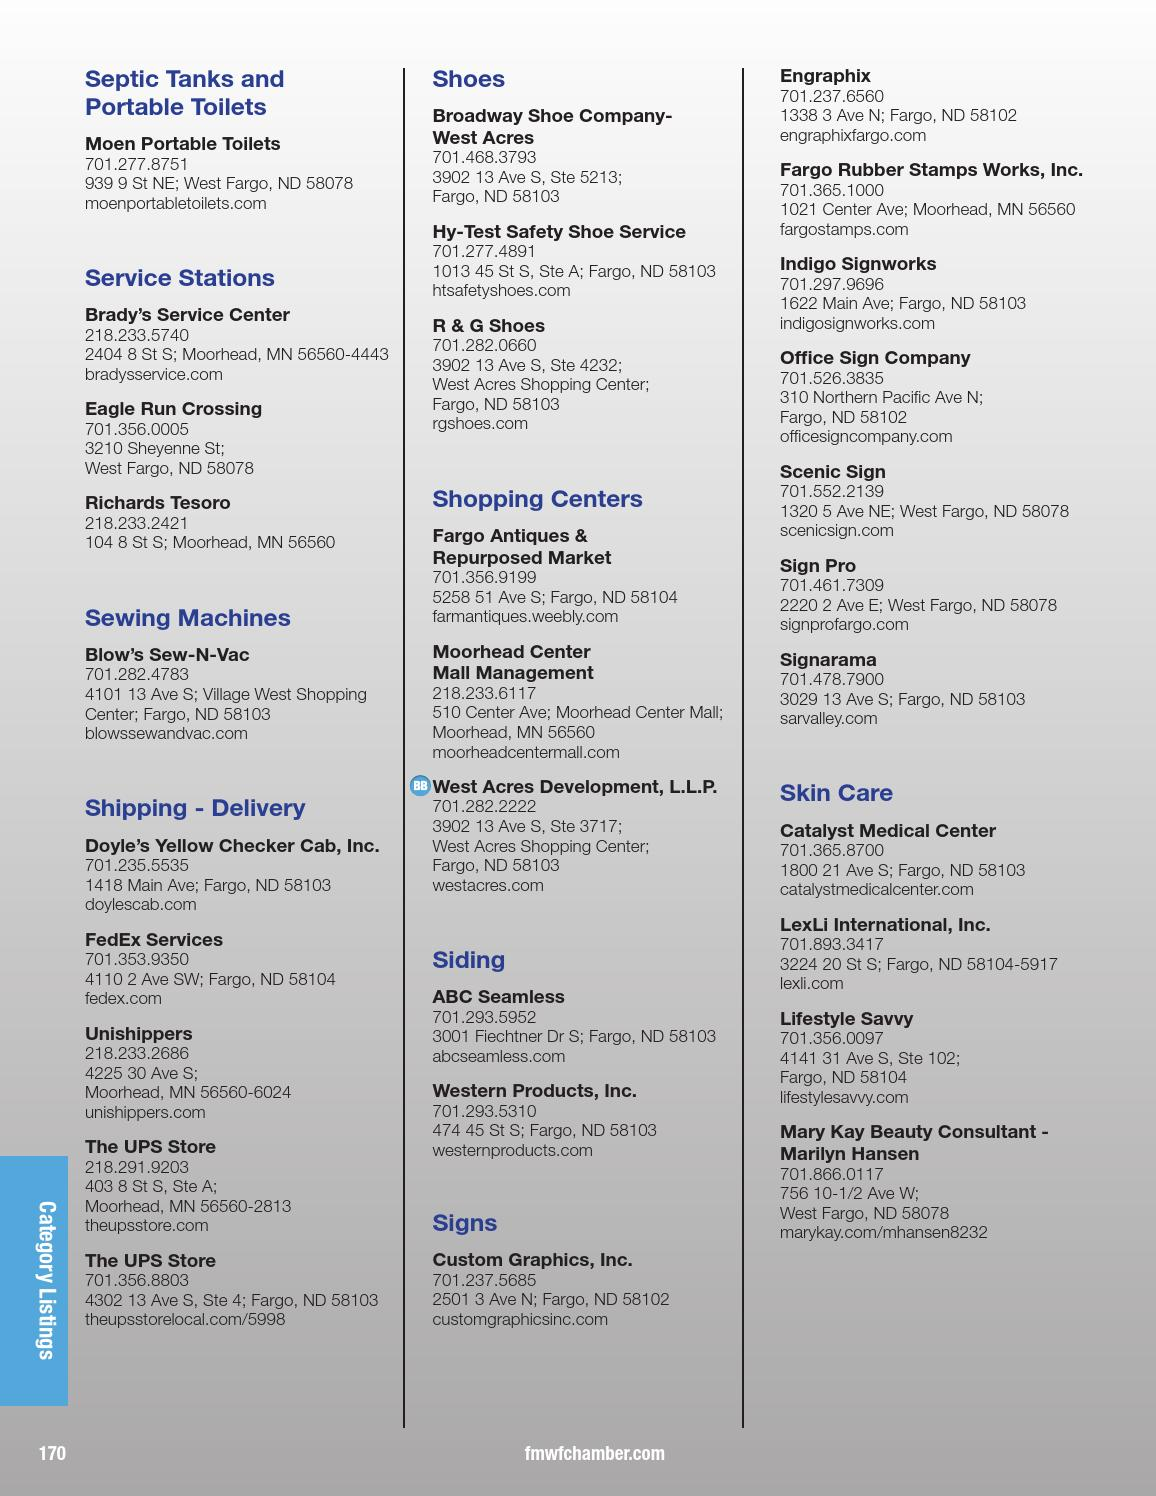 2016 Metro Profile And Member Directory By The FMWF Chamber Of Commerce